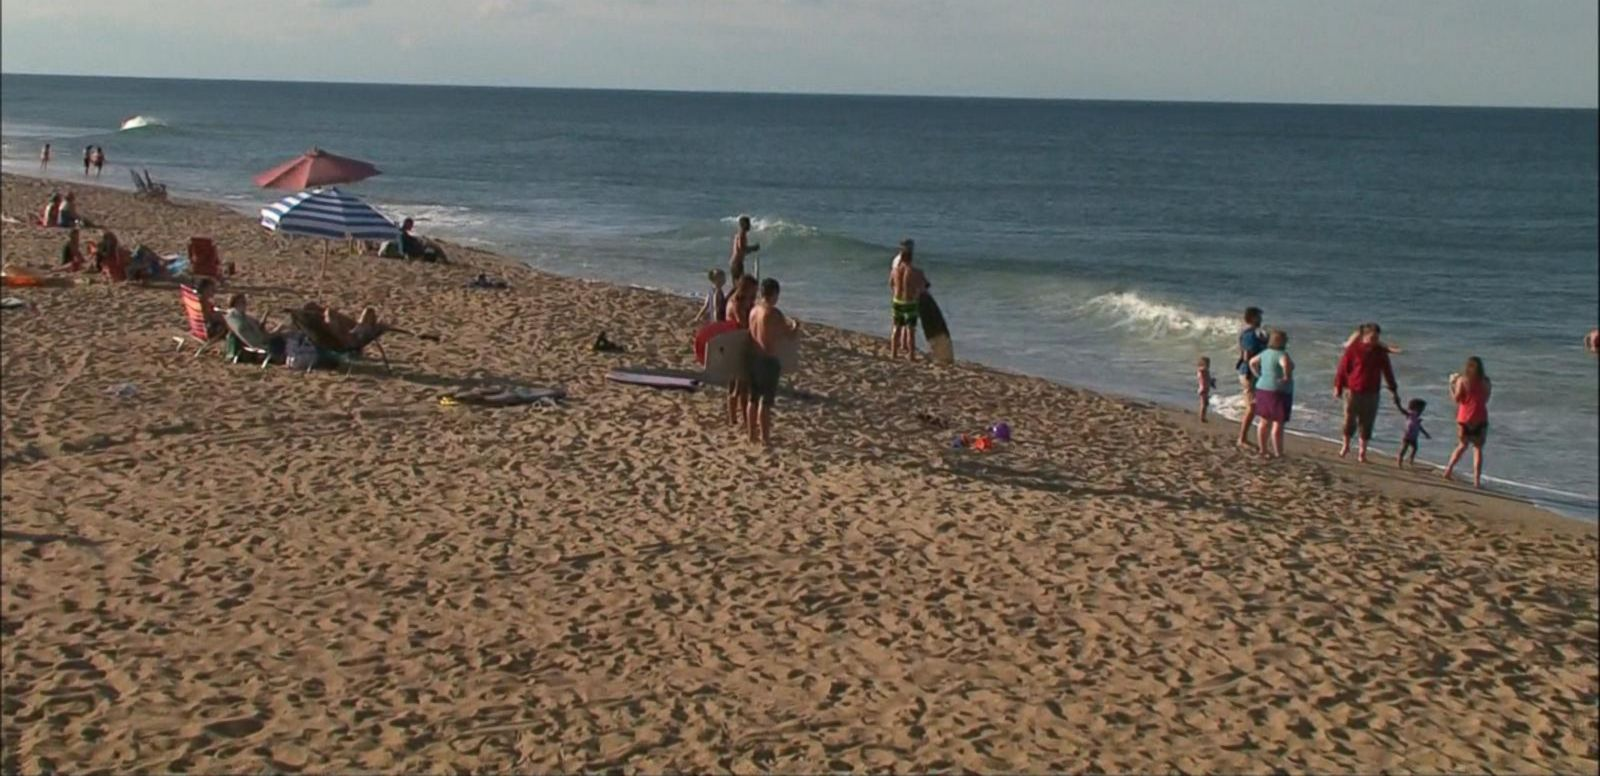 VIDEO: A seventh victim has been attacked by a shark off the coast of North Carolina; this time a 60-year-old man was bitten in the waters of Ocracoke Island on the Outer Banks.